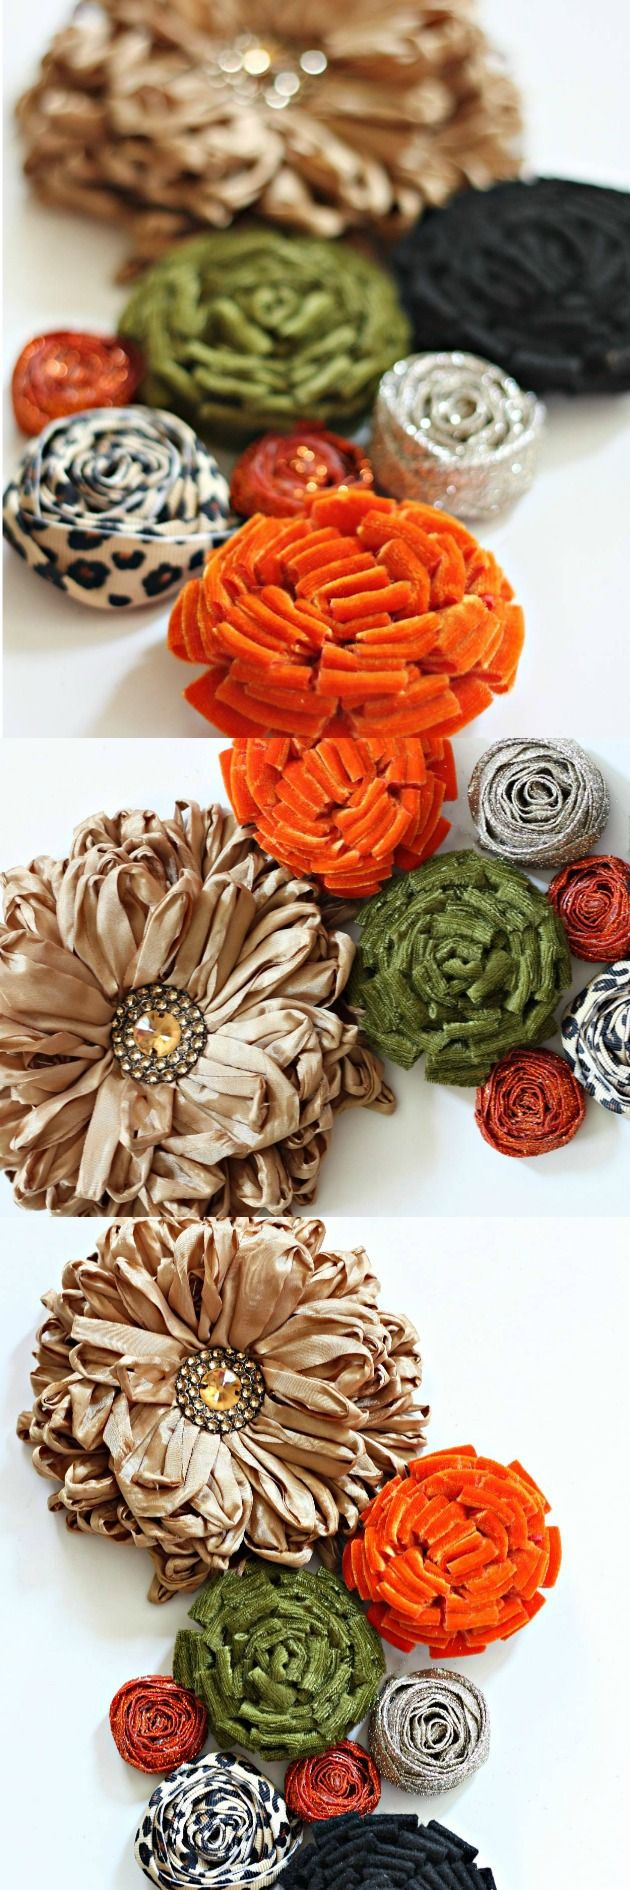 How to make a Posie and Rosette Cluster using Velvet, Felt and Ribbon  #tutorial #craft